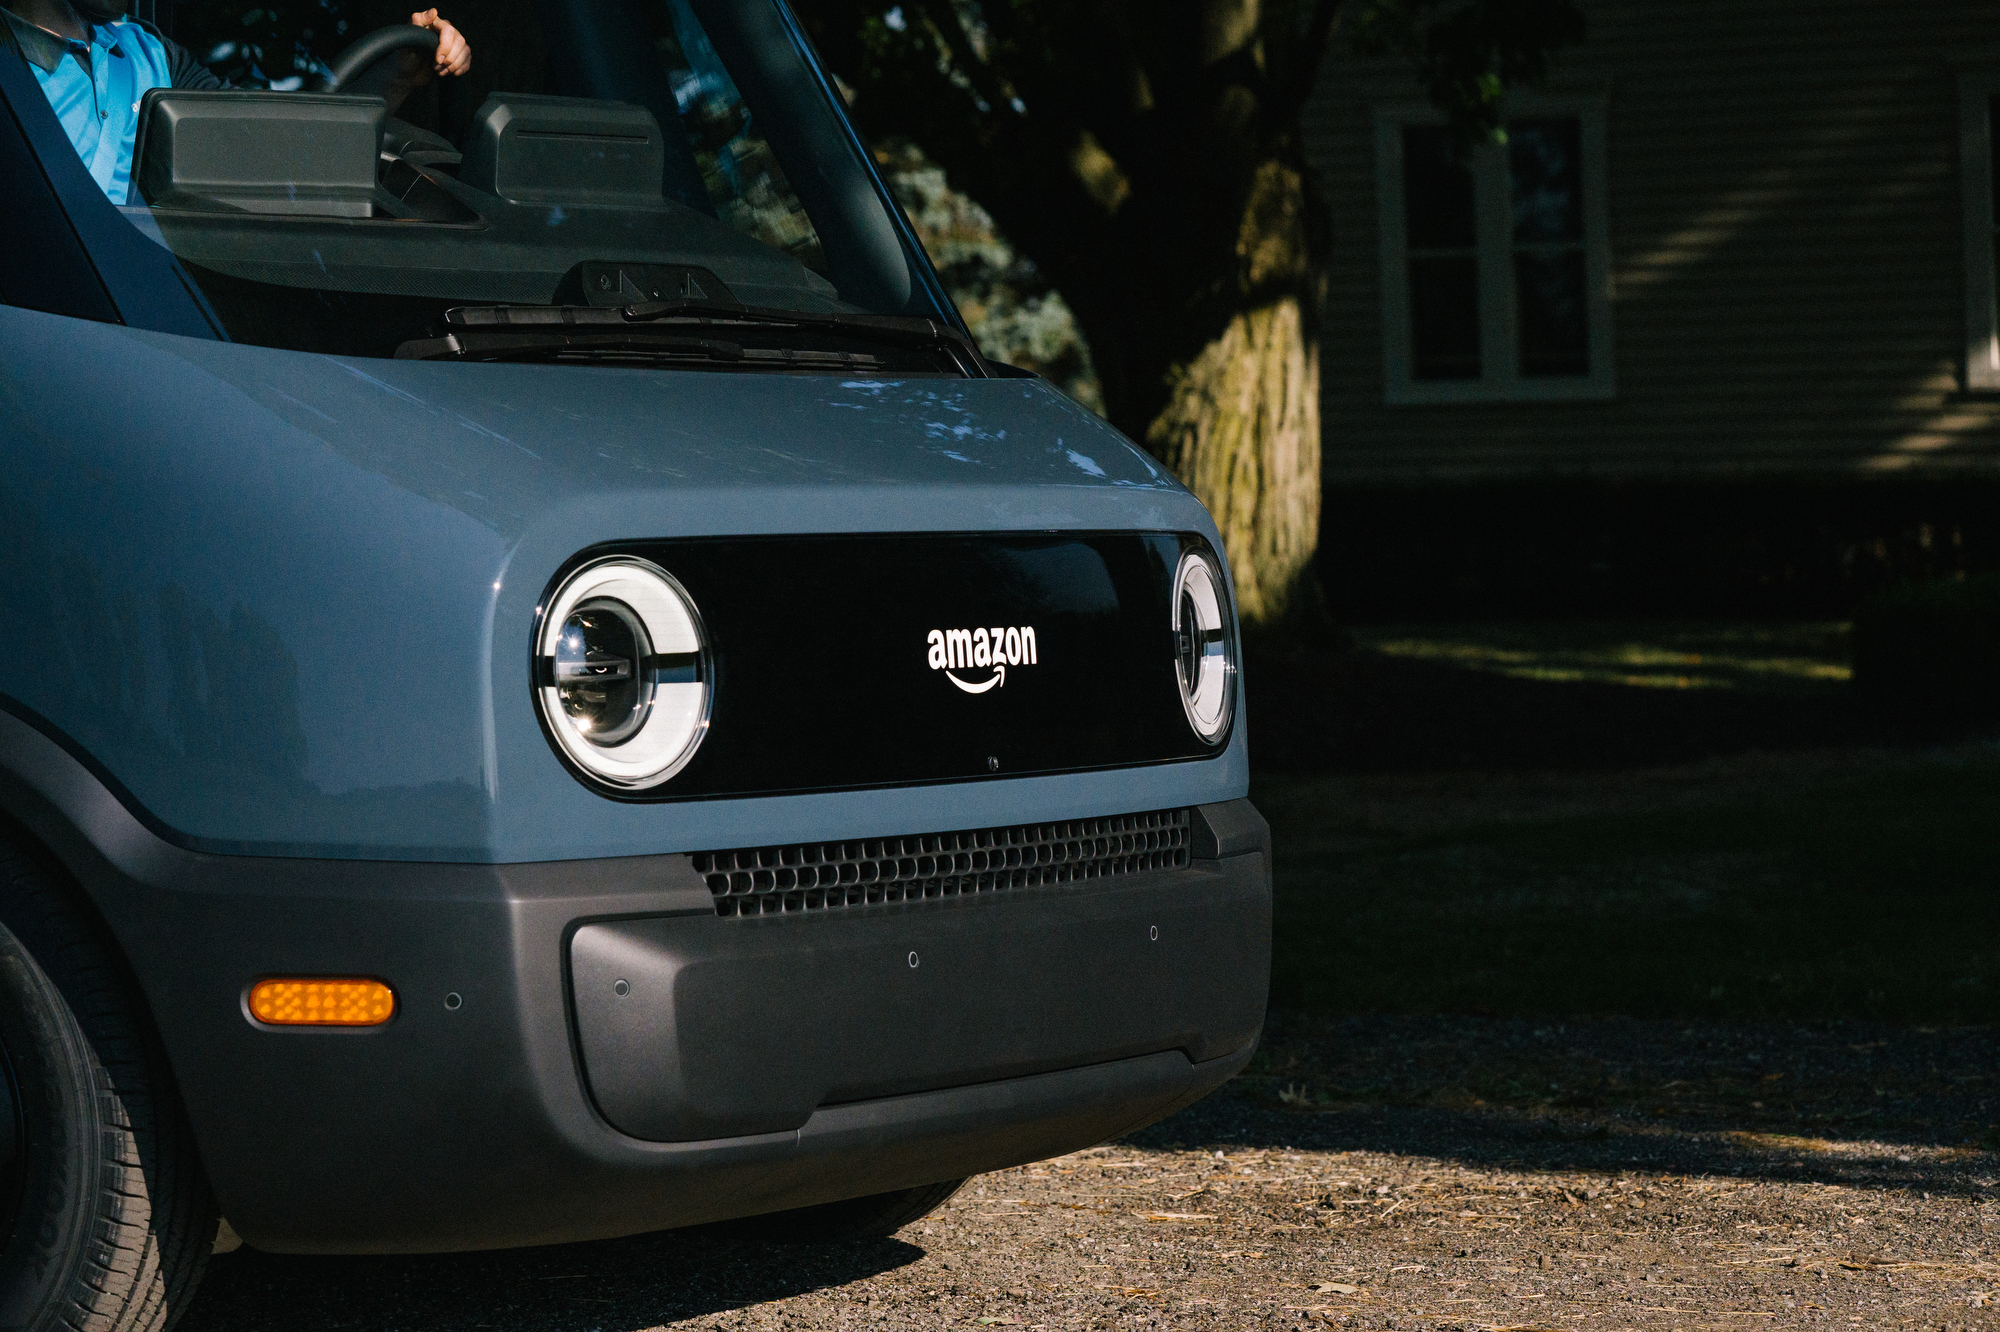 Introducing Amazon's first custom electric delivery vehicle - Image 1